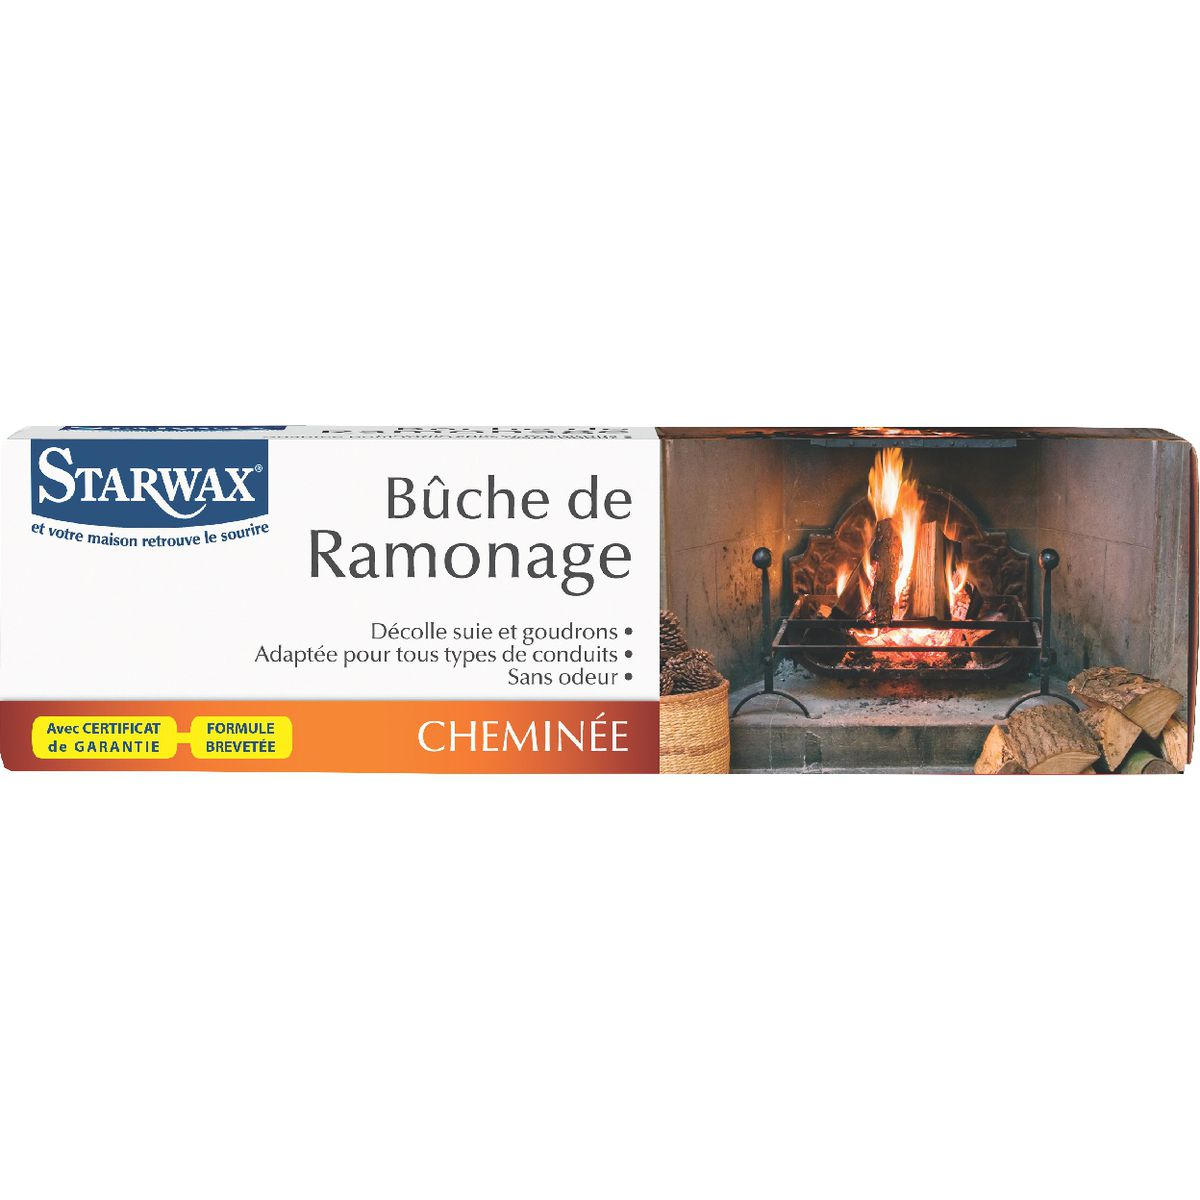 Bûche de ramonage Starwax